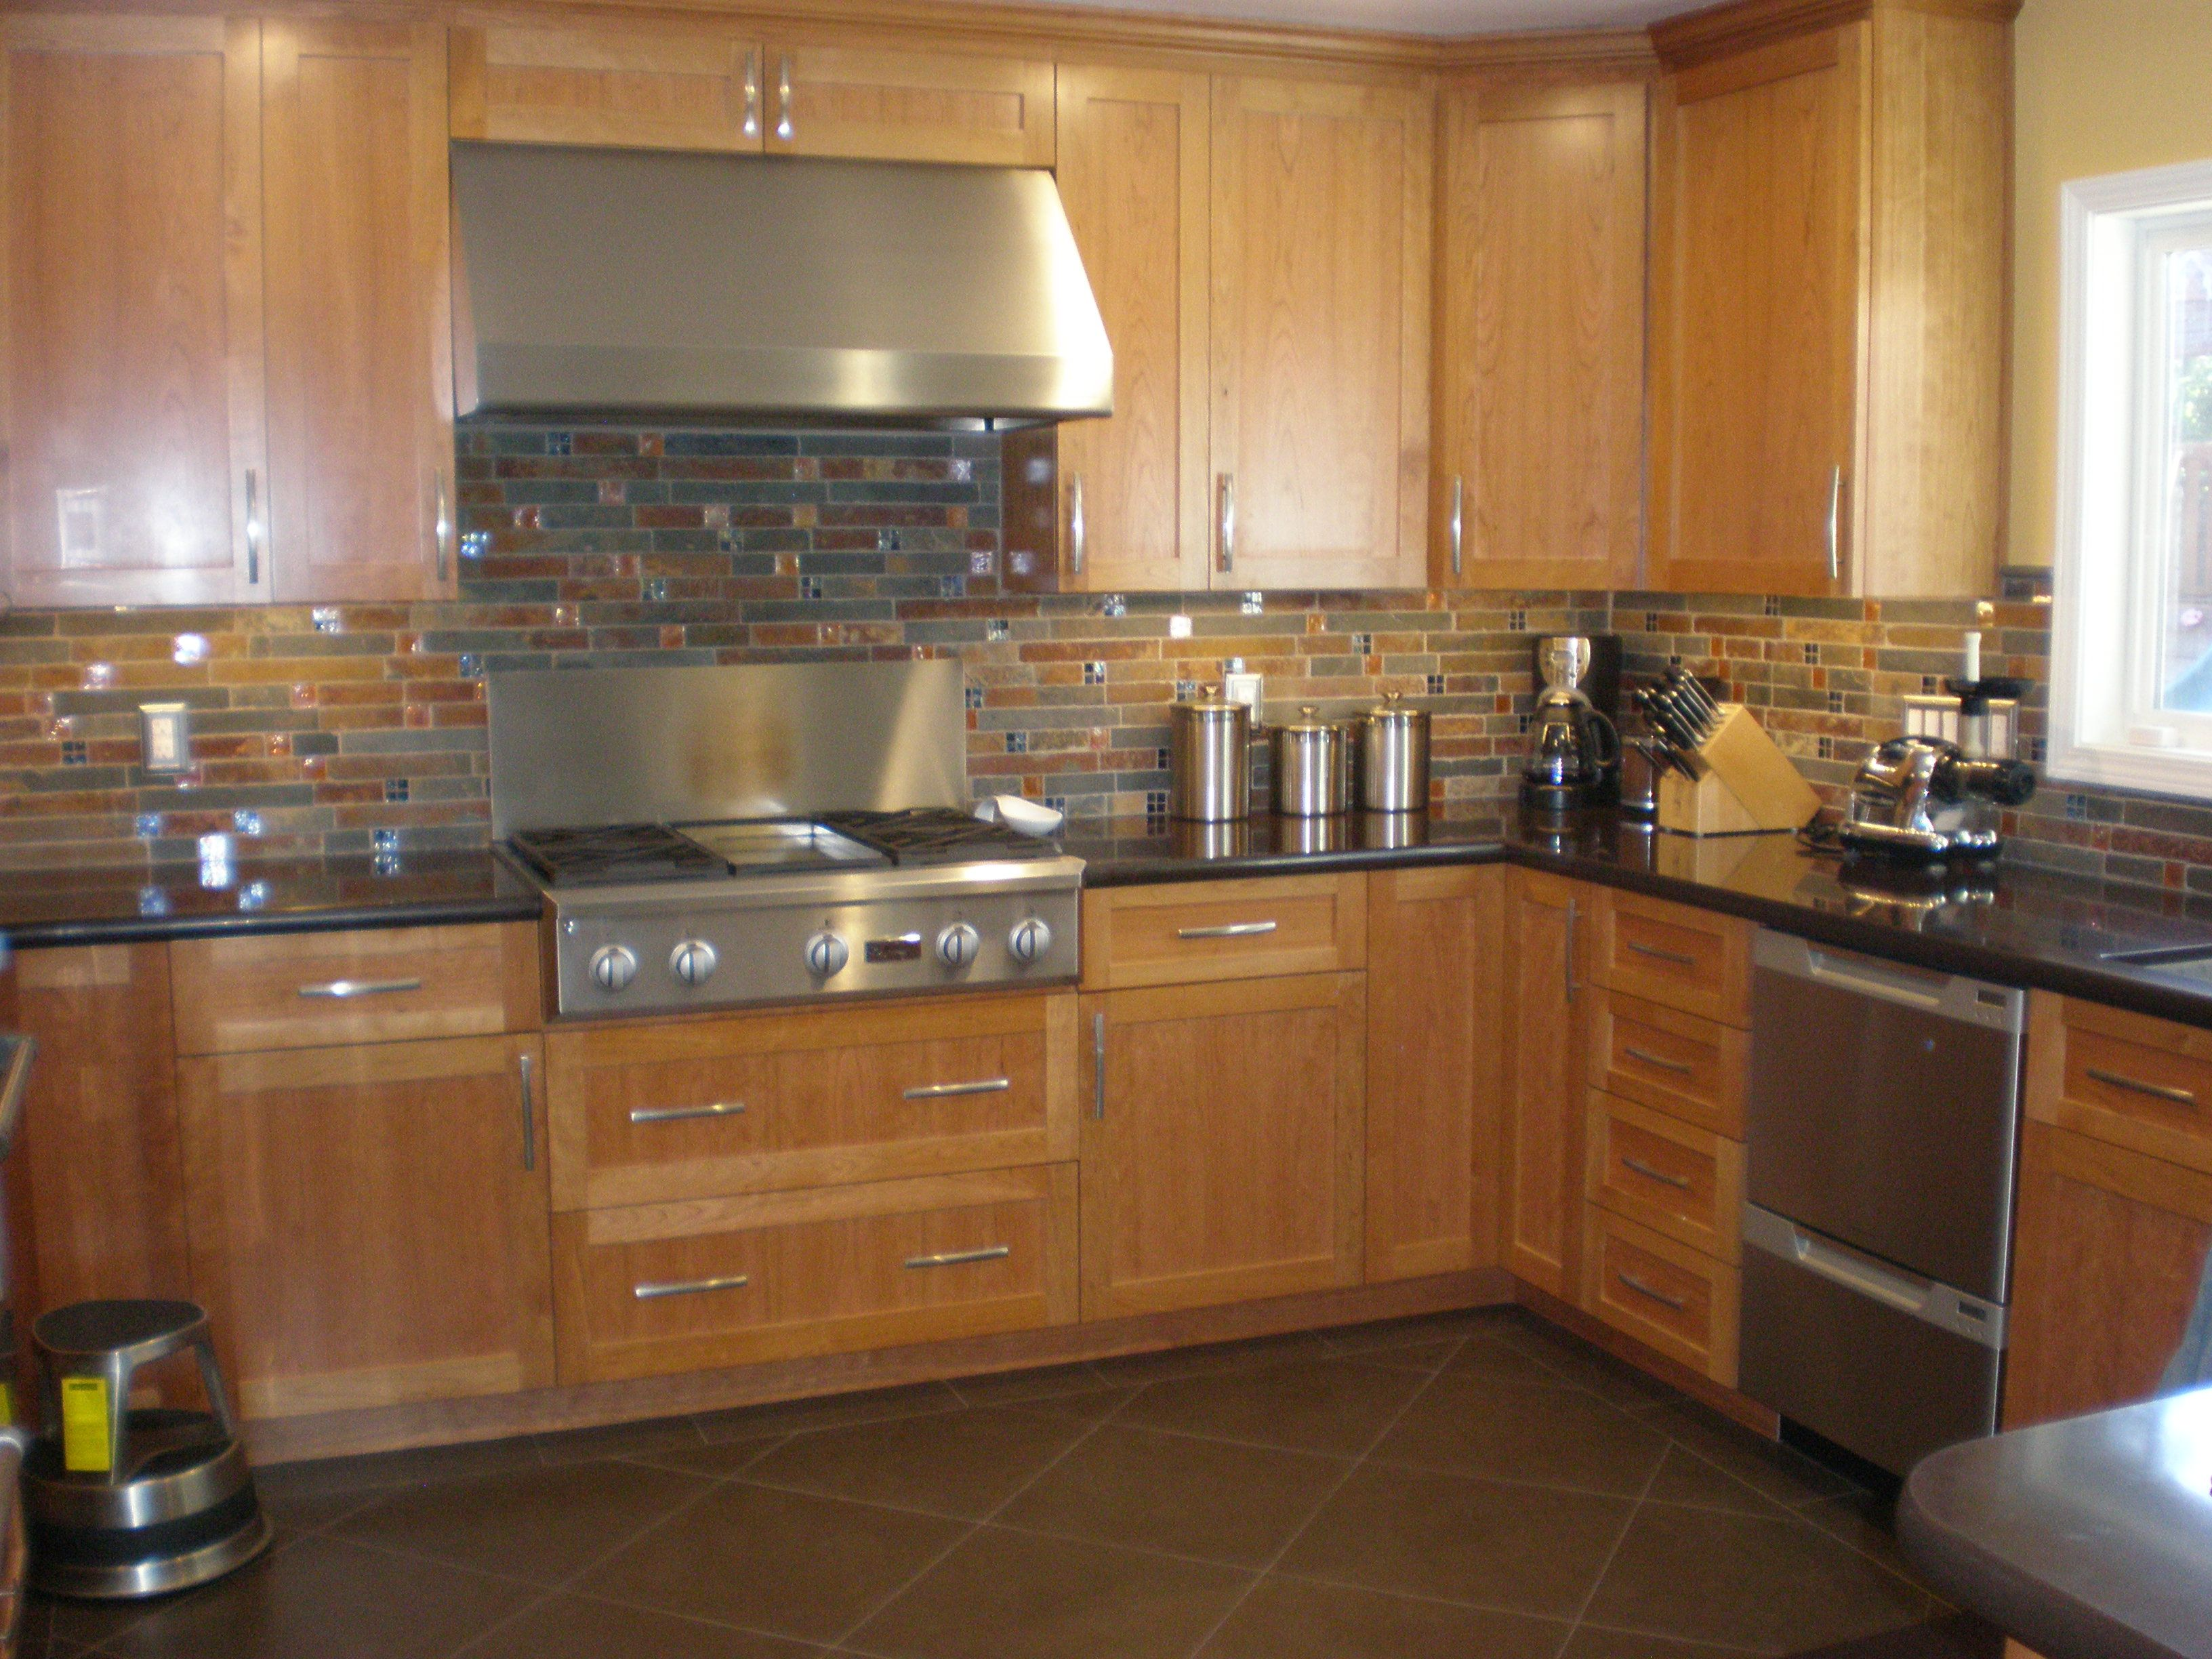 Case Design/Remodeling of San Jose fulfilled this family's wishes ...